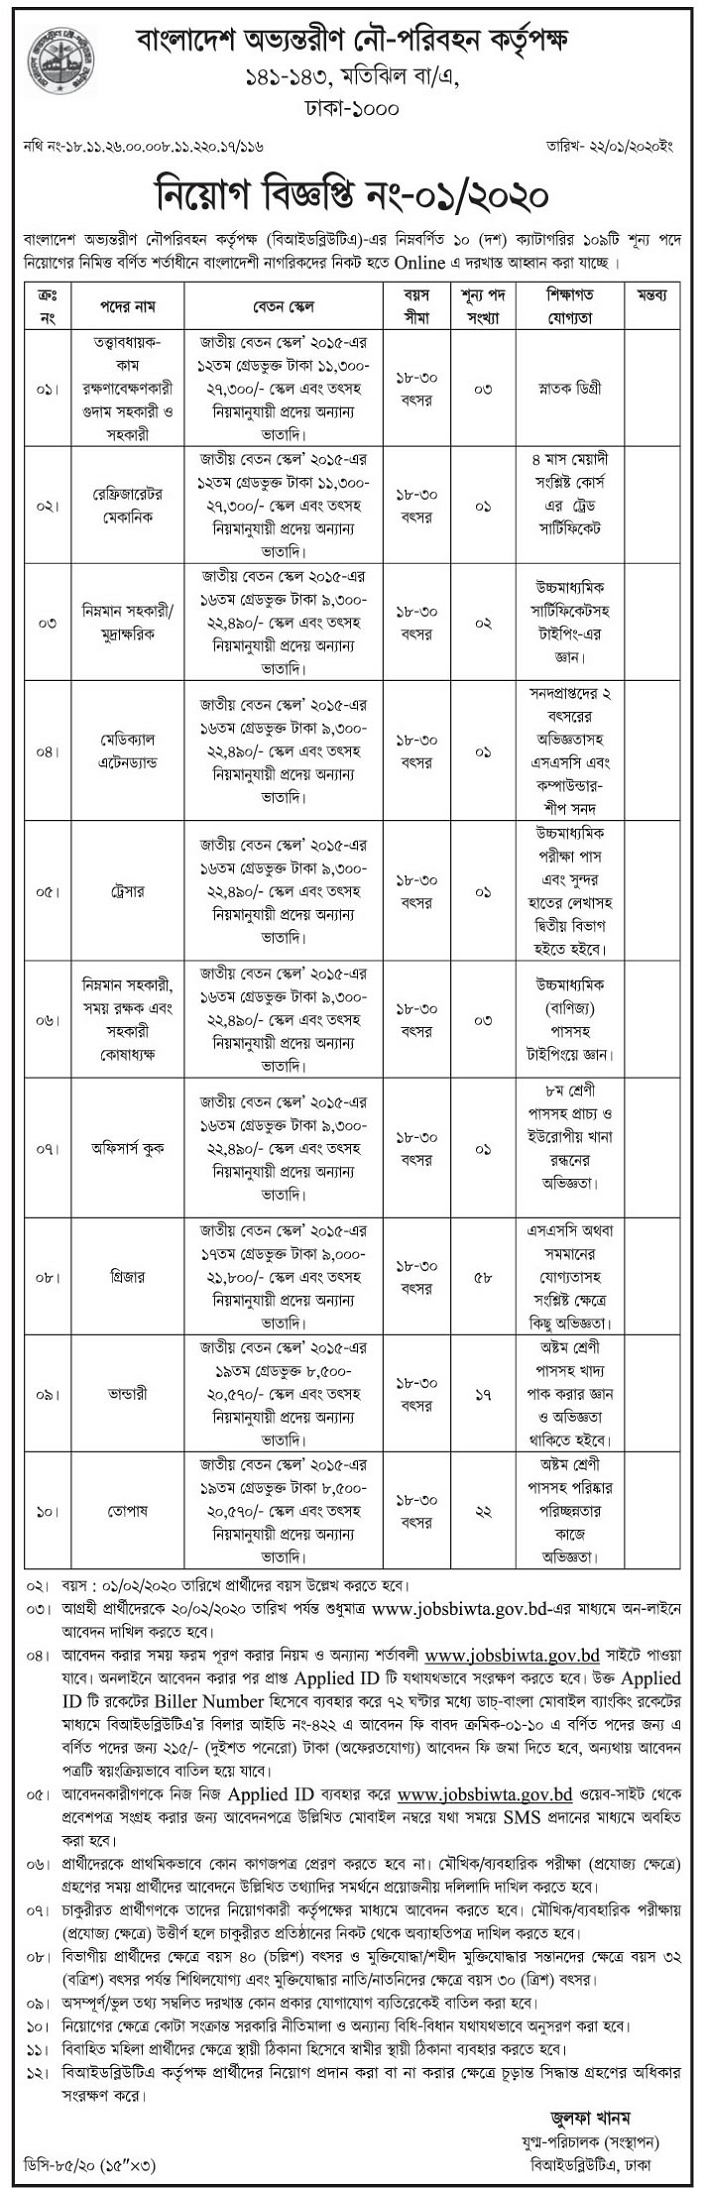 Bangladesh Inland Water Transport Corporation (BIWTC) 2020